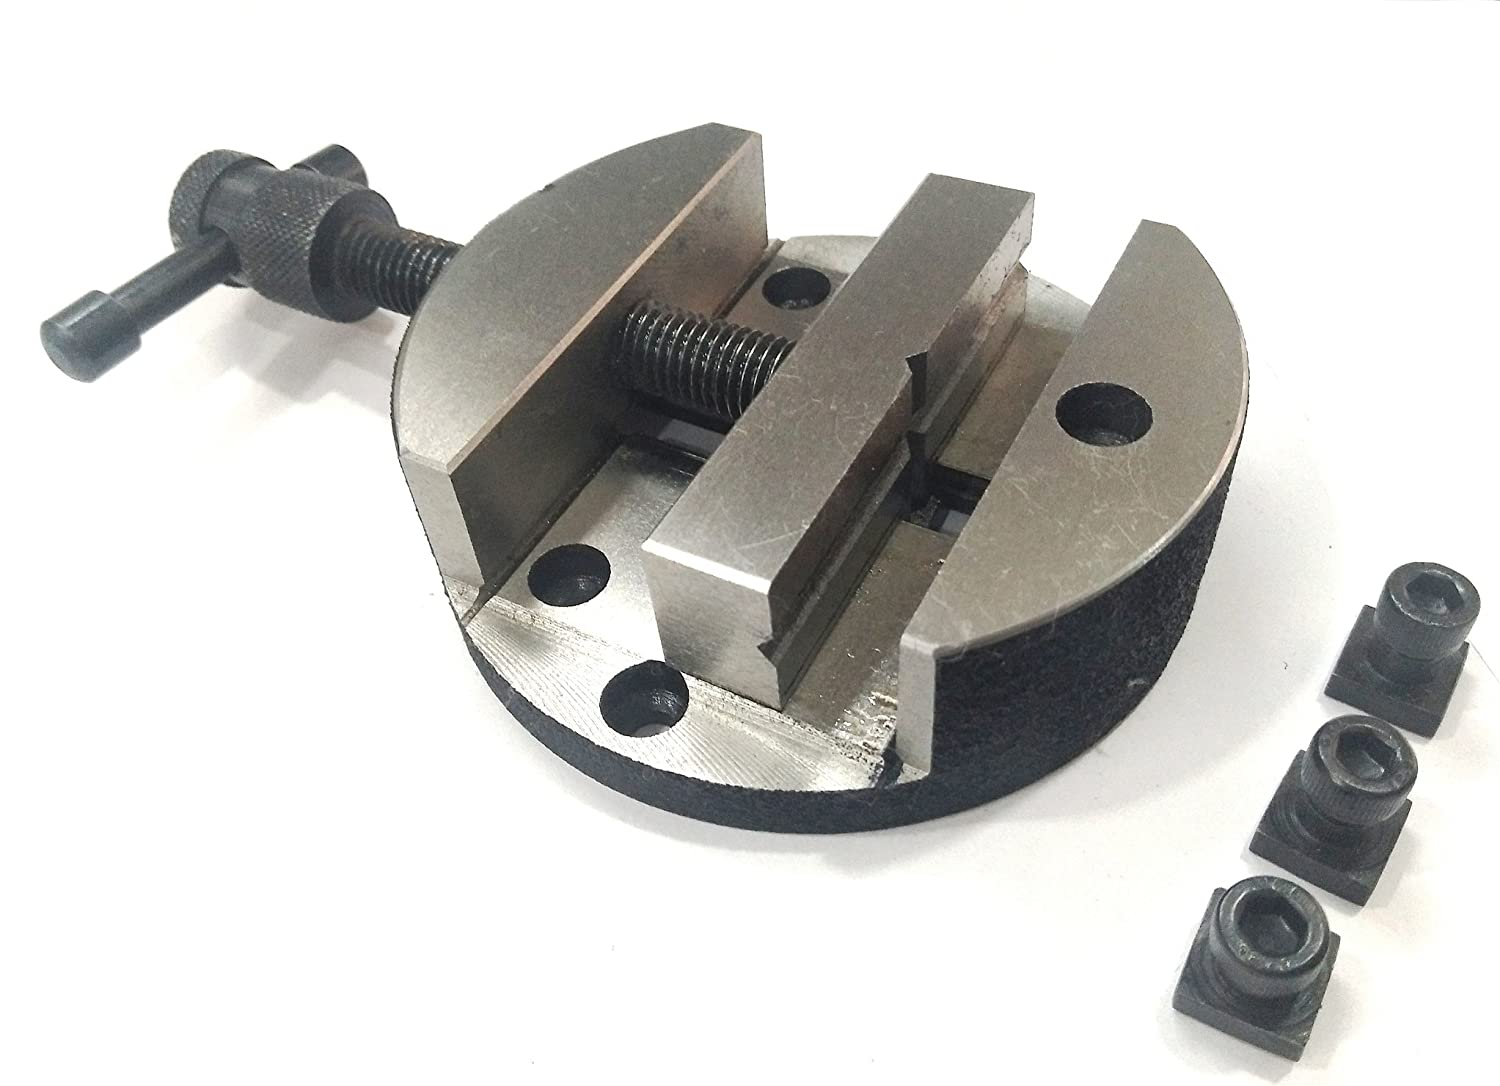 ASSORTS's Quality 80 mm Round Vice for 3' (80 mm) & 4' (100 mm) Rotary Milling Indexing Table with 3 x M6 T nuts Bolts-Engineering Tools Global Tools